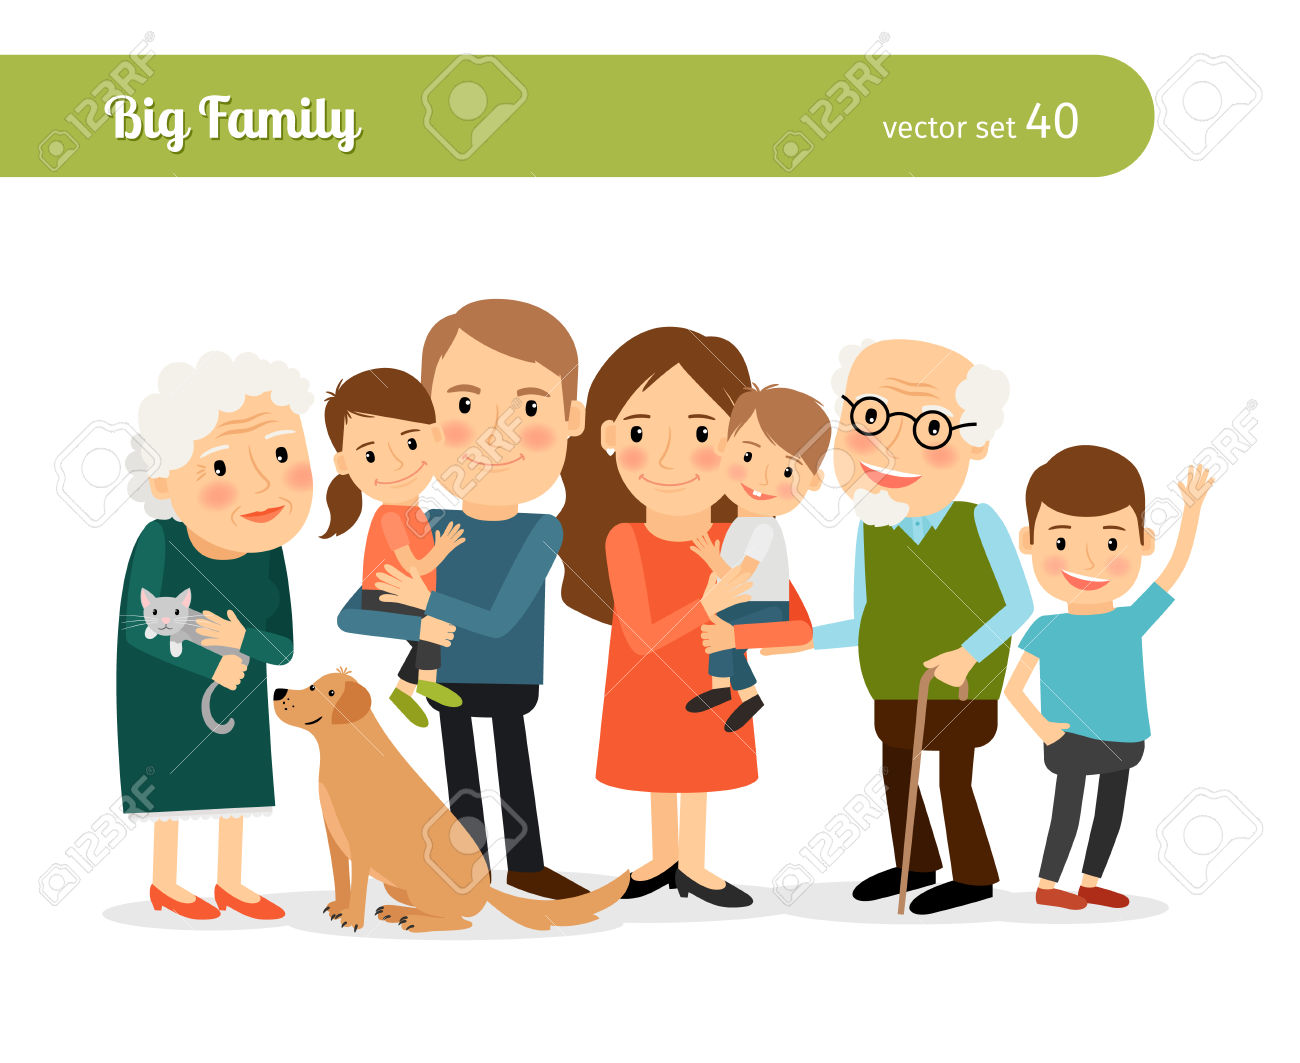 family clipart with no mom ore dad - Clipground (1300 x 1063 Pixel)